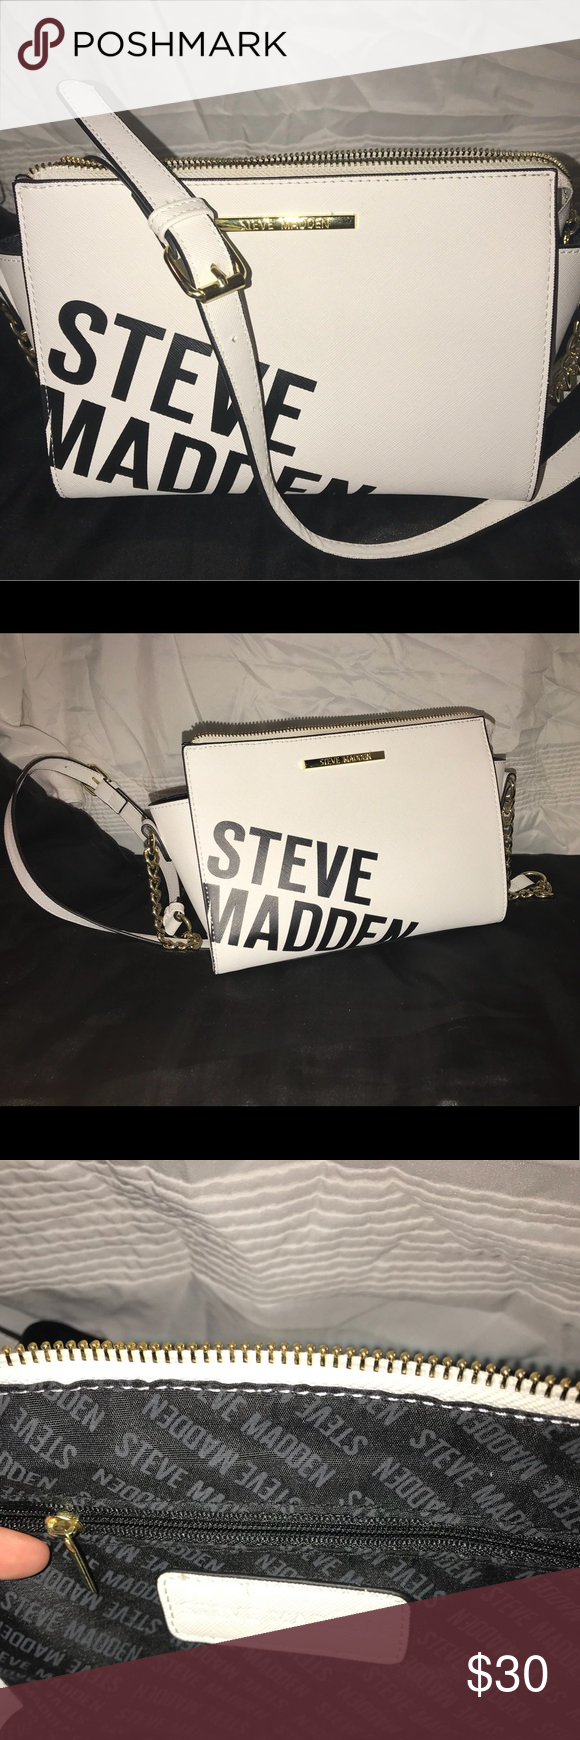 Steve Madden Logo Crossbody All White Crossbody With Adjustable Strap Perfect For Small Items Especially For Going Ou Steve Madden Bags Steve Madden Crossbody